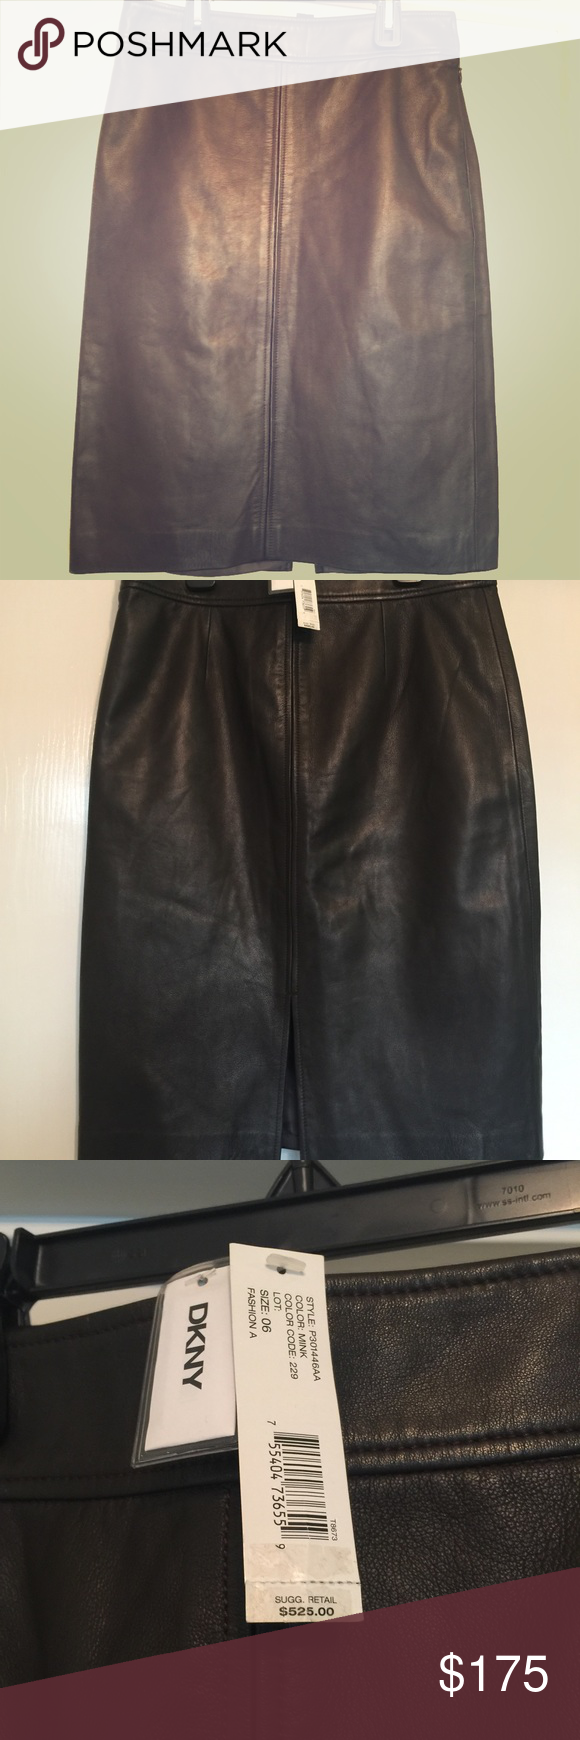 c13d2c1c5a DKNY chocolate brown leather skirt NWT Beautiful DKNY chocolate brown  leather pencil skirt size 6. Never worn. DKNY Skirts Pencil